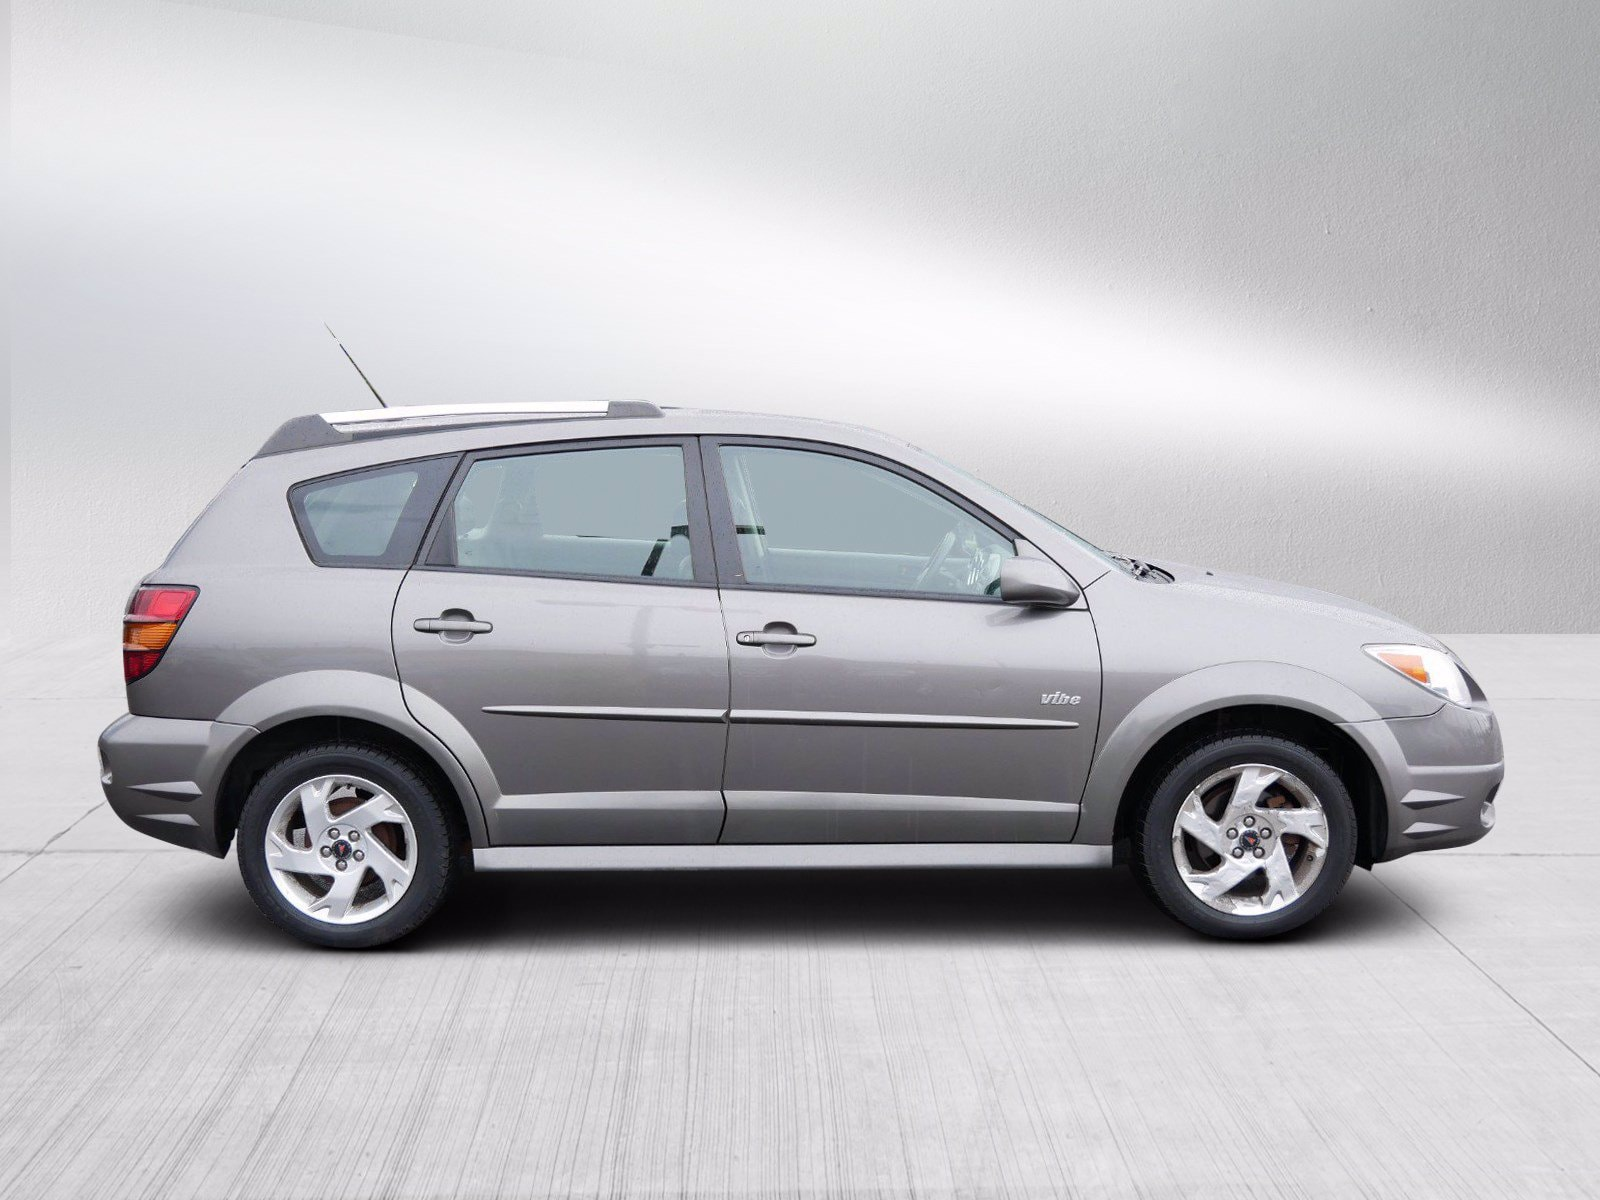 Used 2006 Pontiac Vibe  with VIN 5Y2SL65896Z449814 for sale in Bloomington, Minnesota